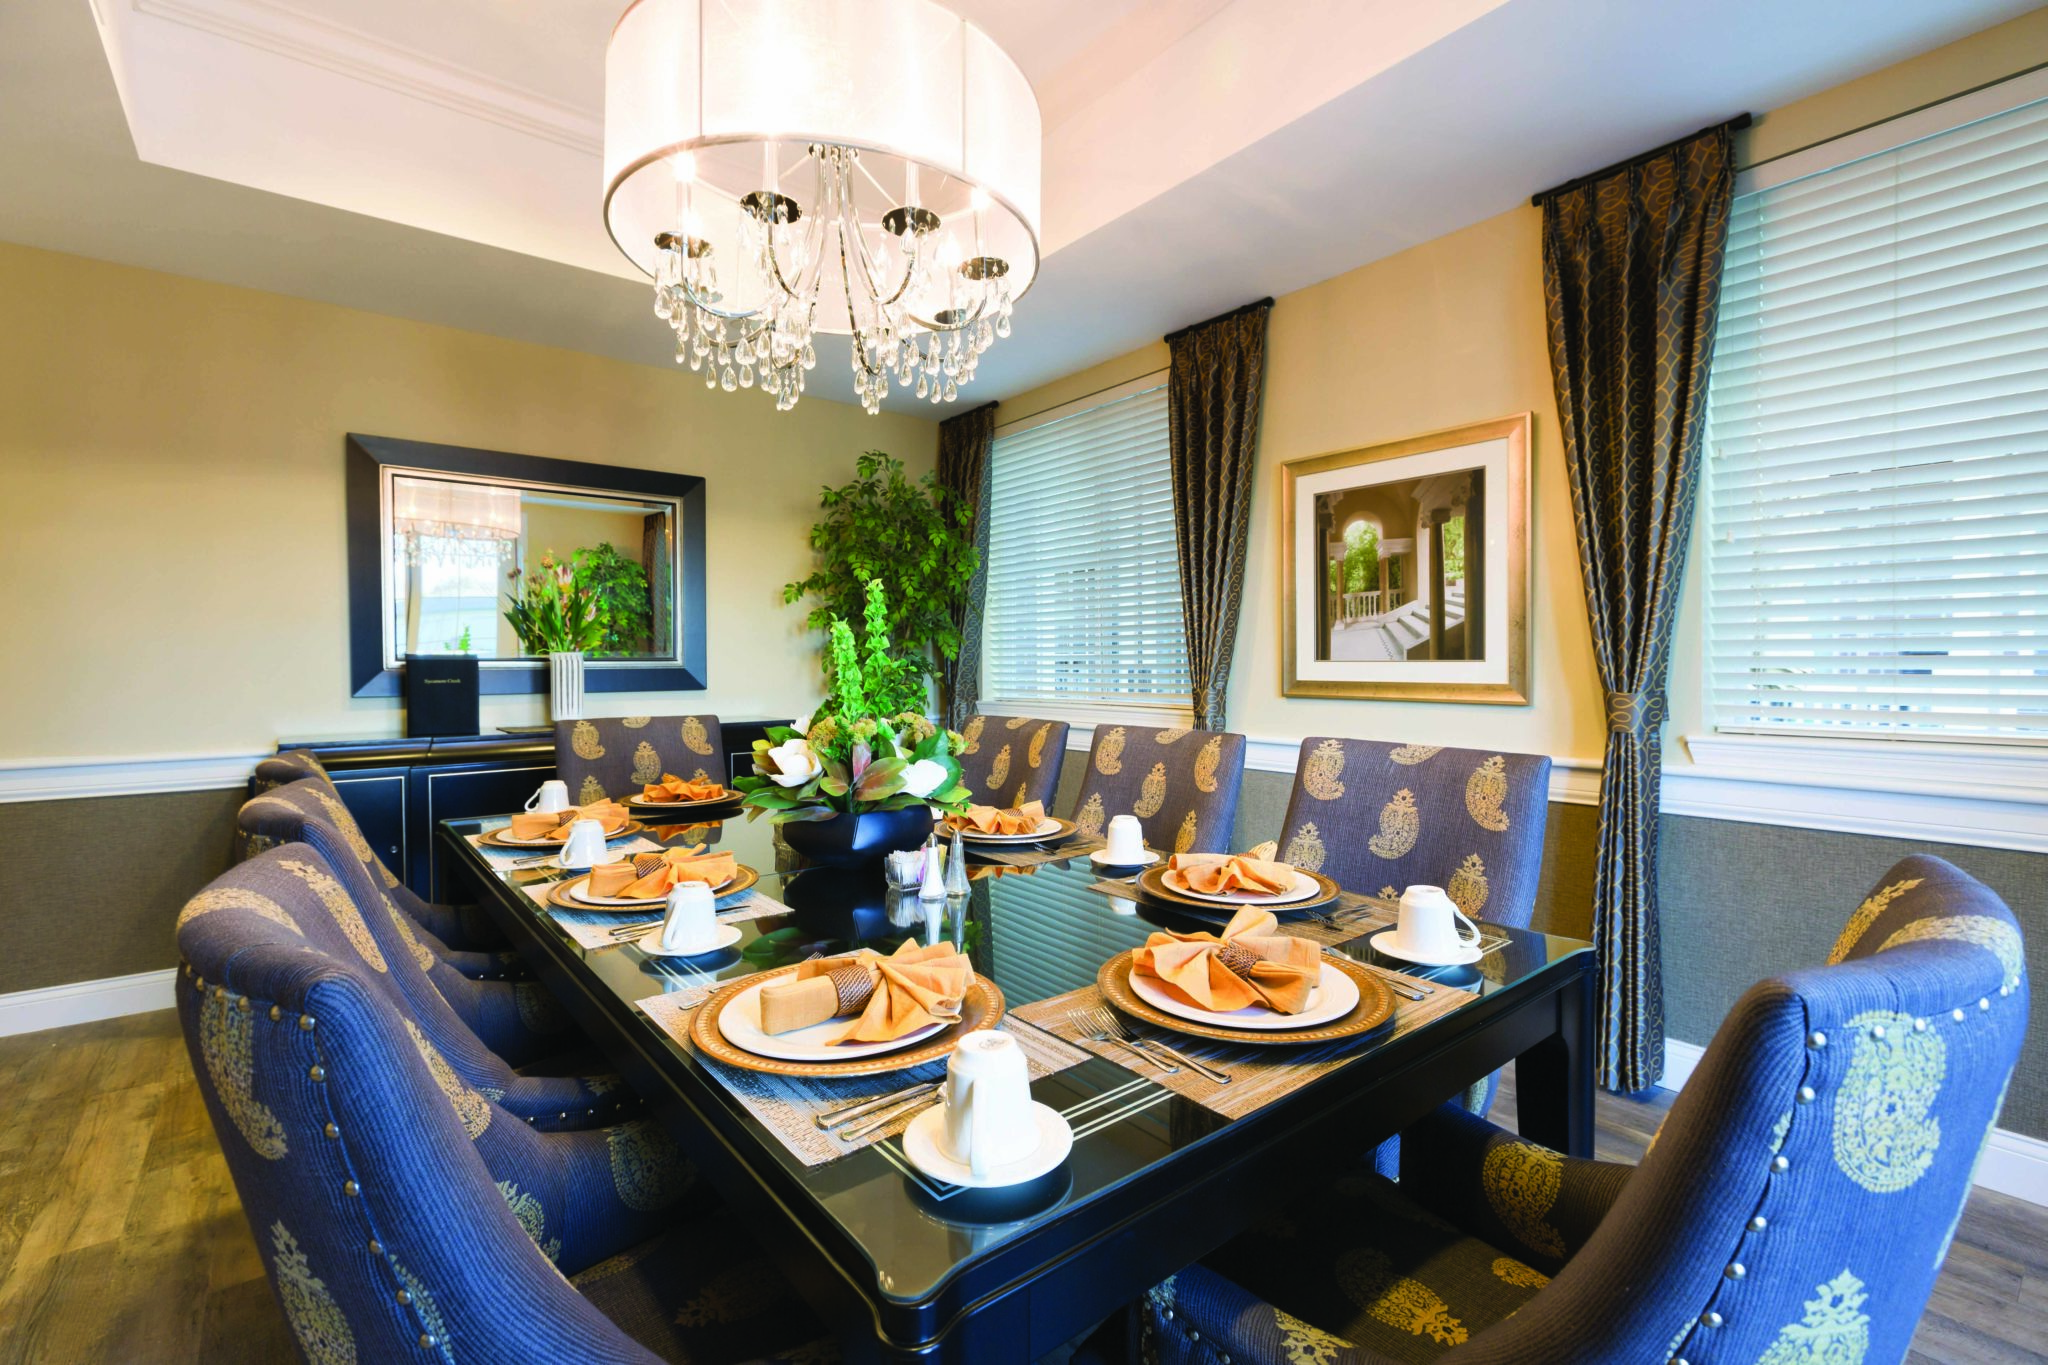 Sycamore Creek Independent Living Dining Room.jpg